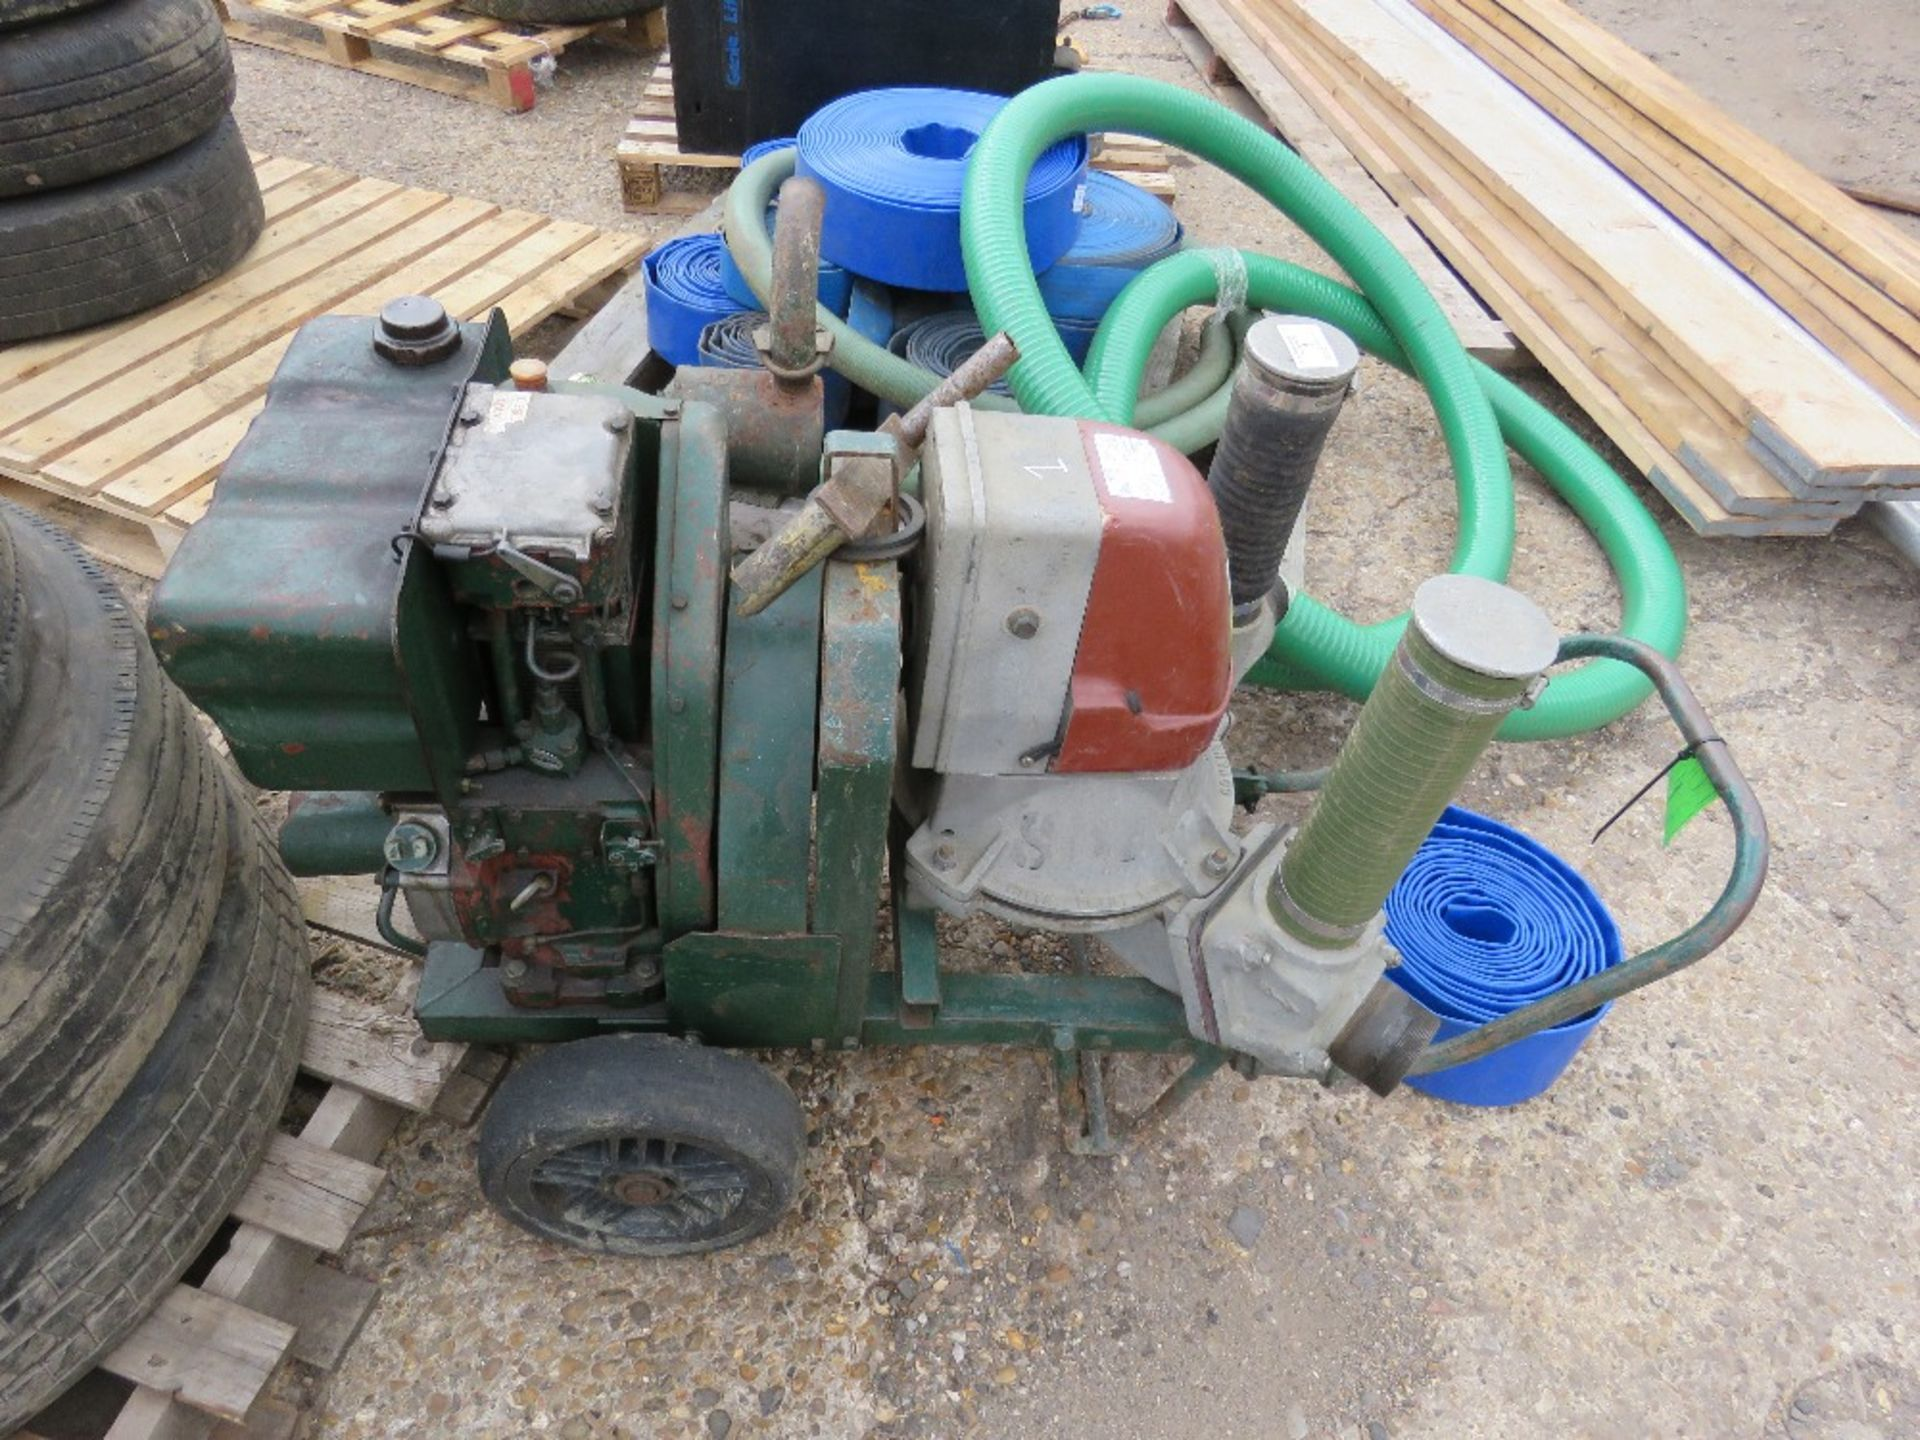 HILTA HANDLE START WATER PUMP. LISTER ENGINE. WITH HOSES AND STARTING HANDLE. DIRECT FROM LOCAL COMP - Image 2 of 2